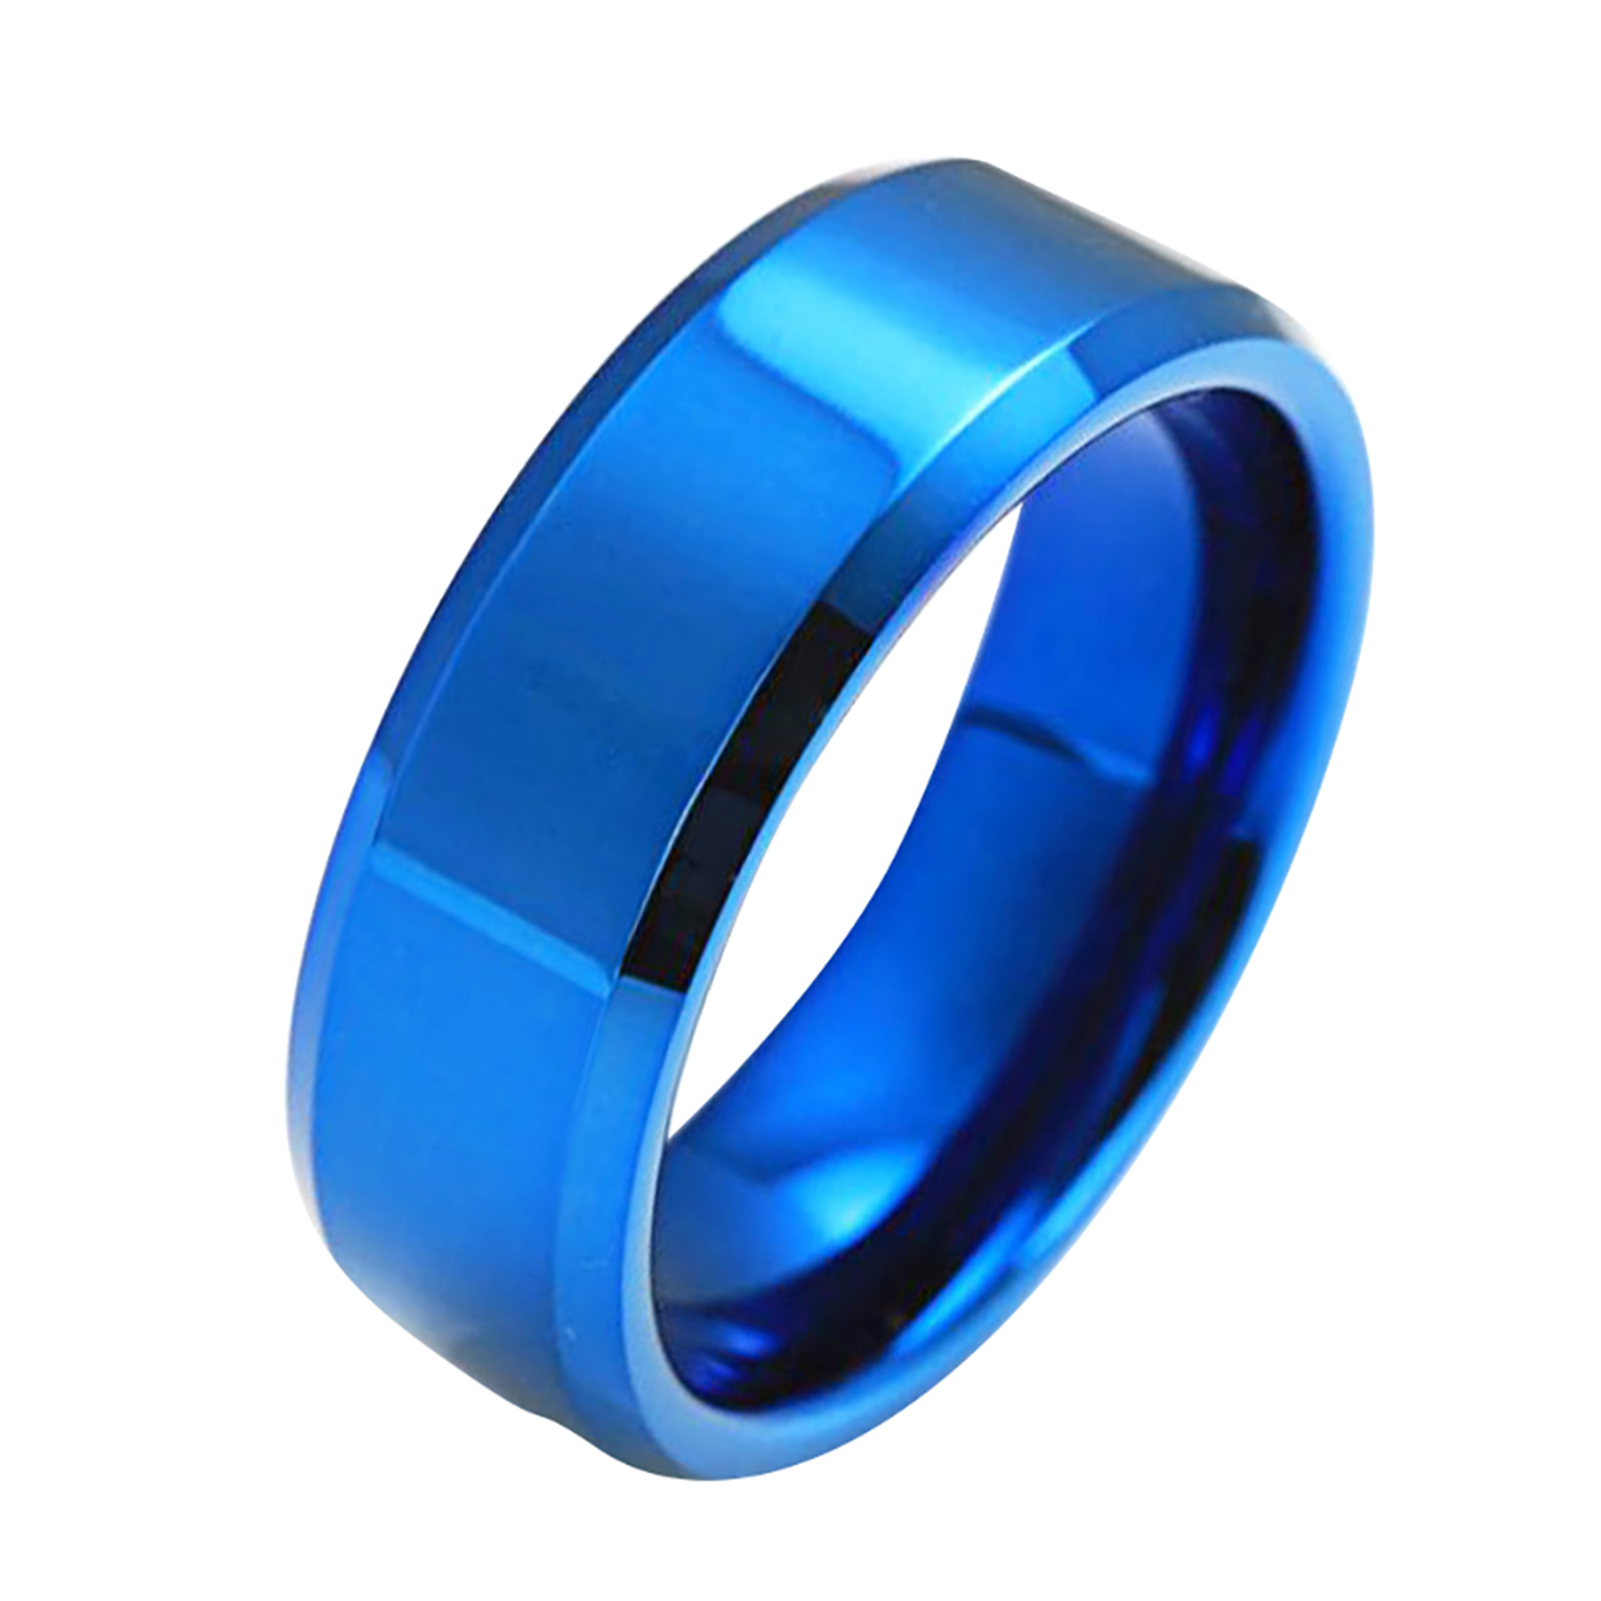 Stainless-Steel-Titanium-Ring-Men-amp-Women-Wedding-Engagement-Band-Cool-Size-6-13 thumbnail 14